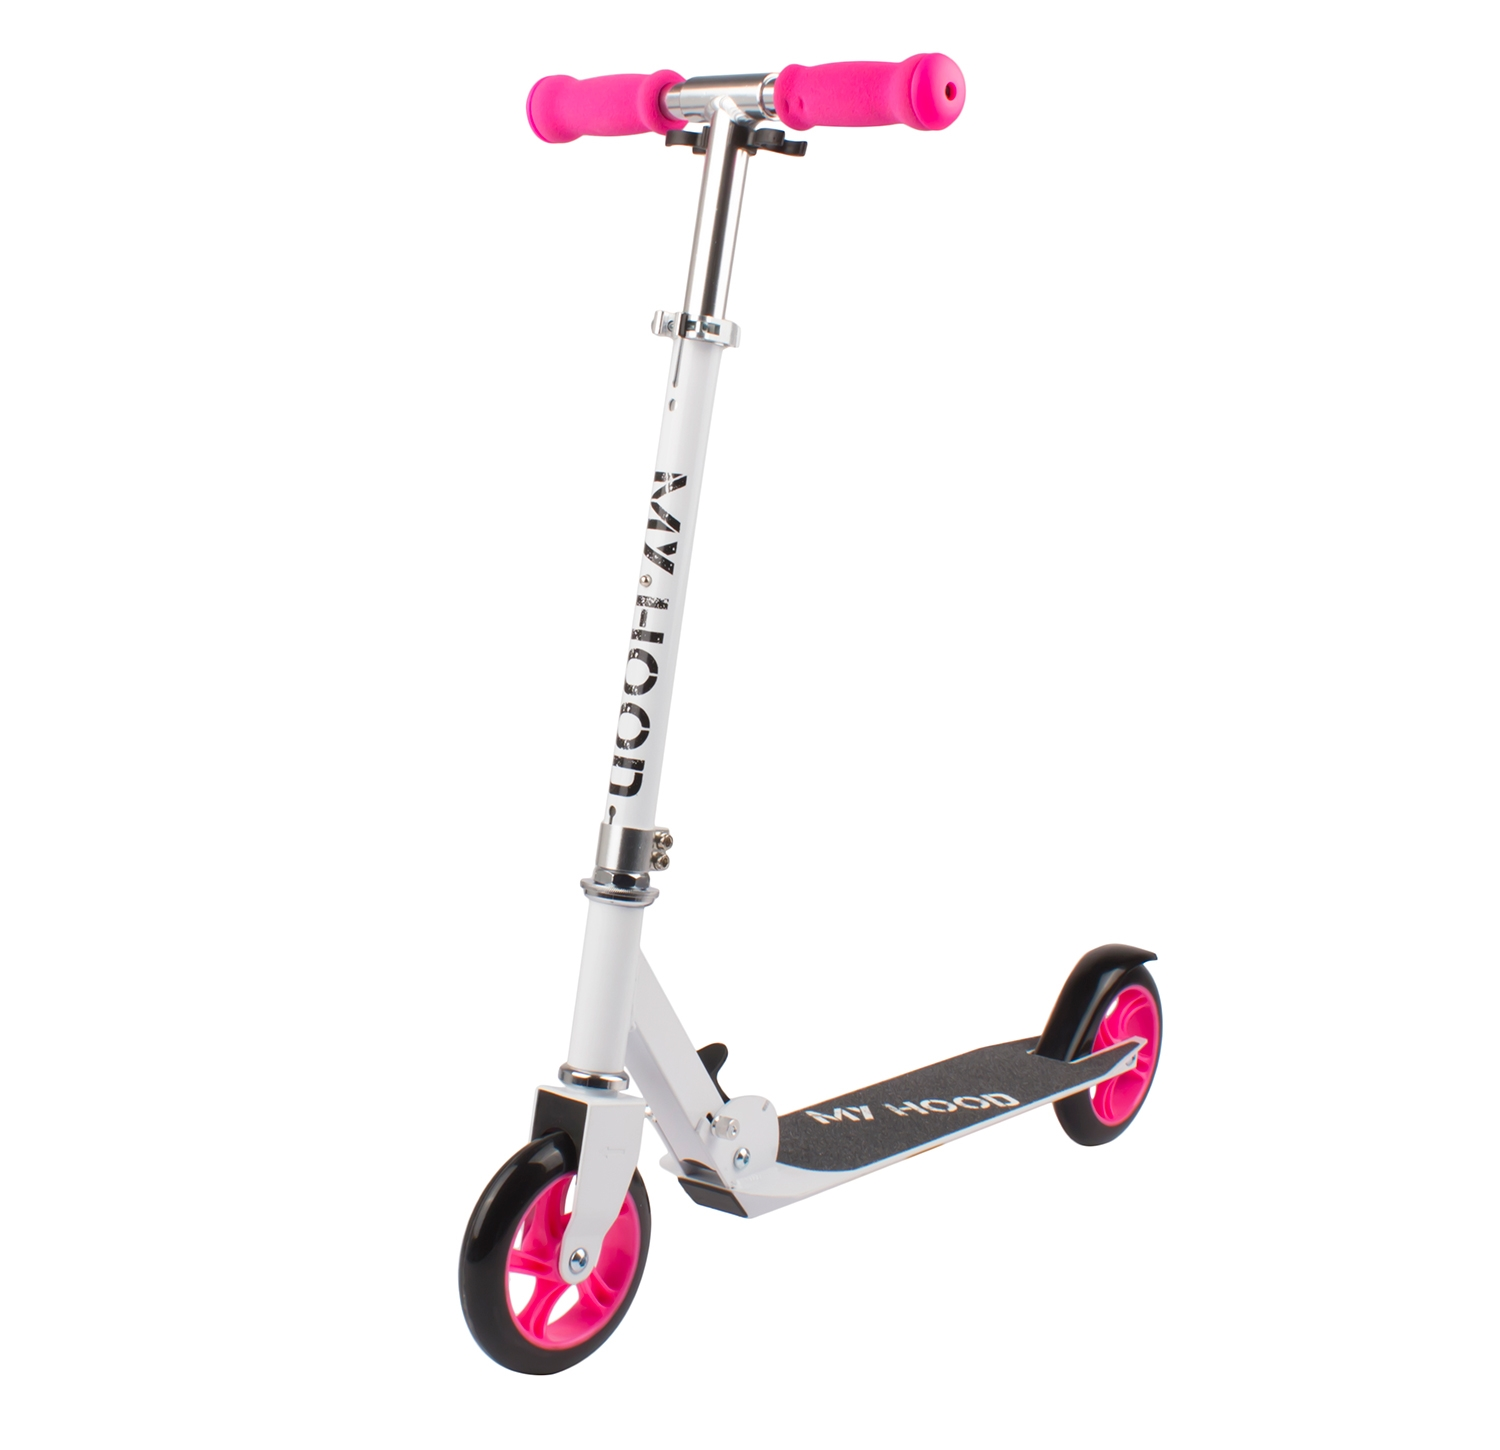 My Hood - Scooter 145 White/Pink (505160)